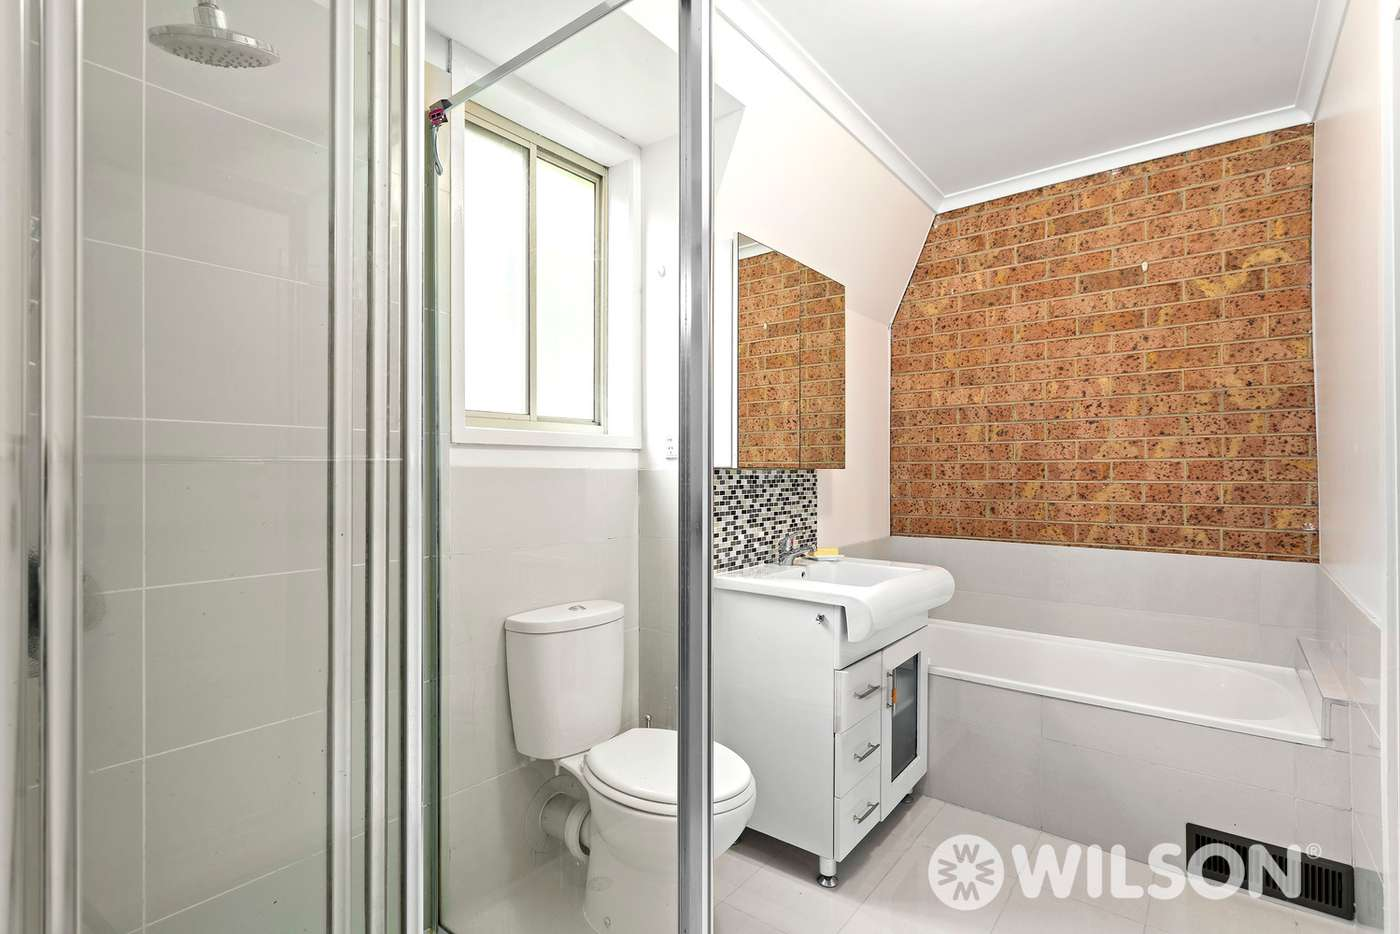 Fifth view of Homely townhouse listing, 2/291 Barkly Street, St Kilda VIC 3182